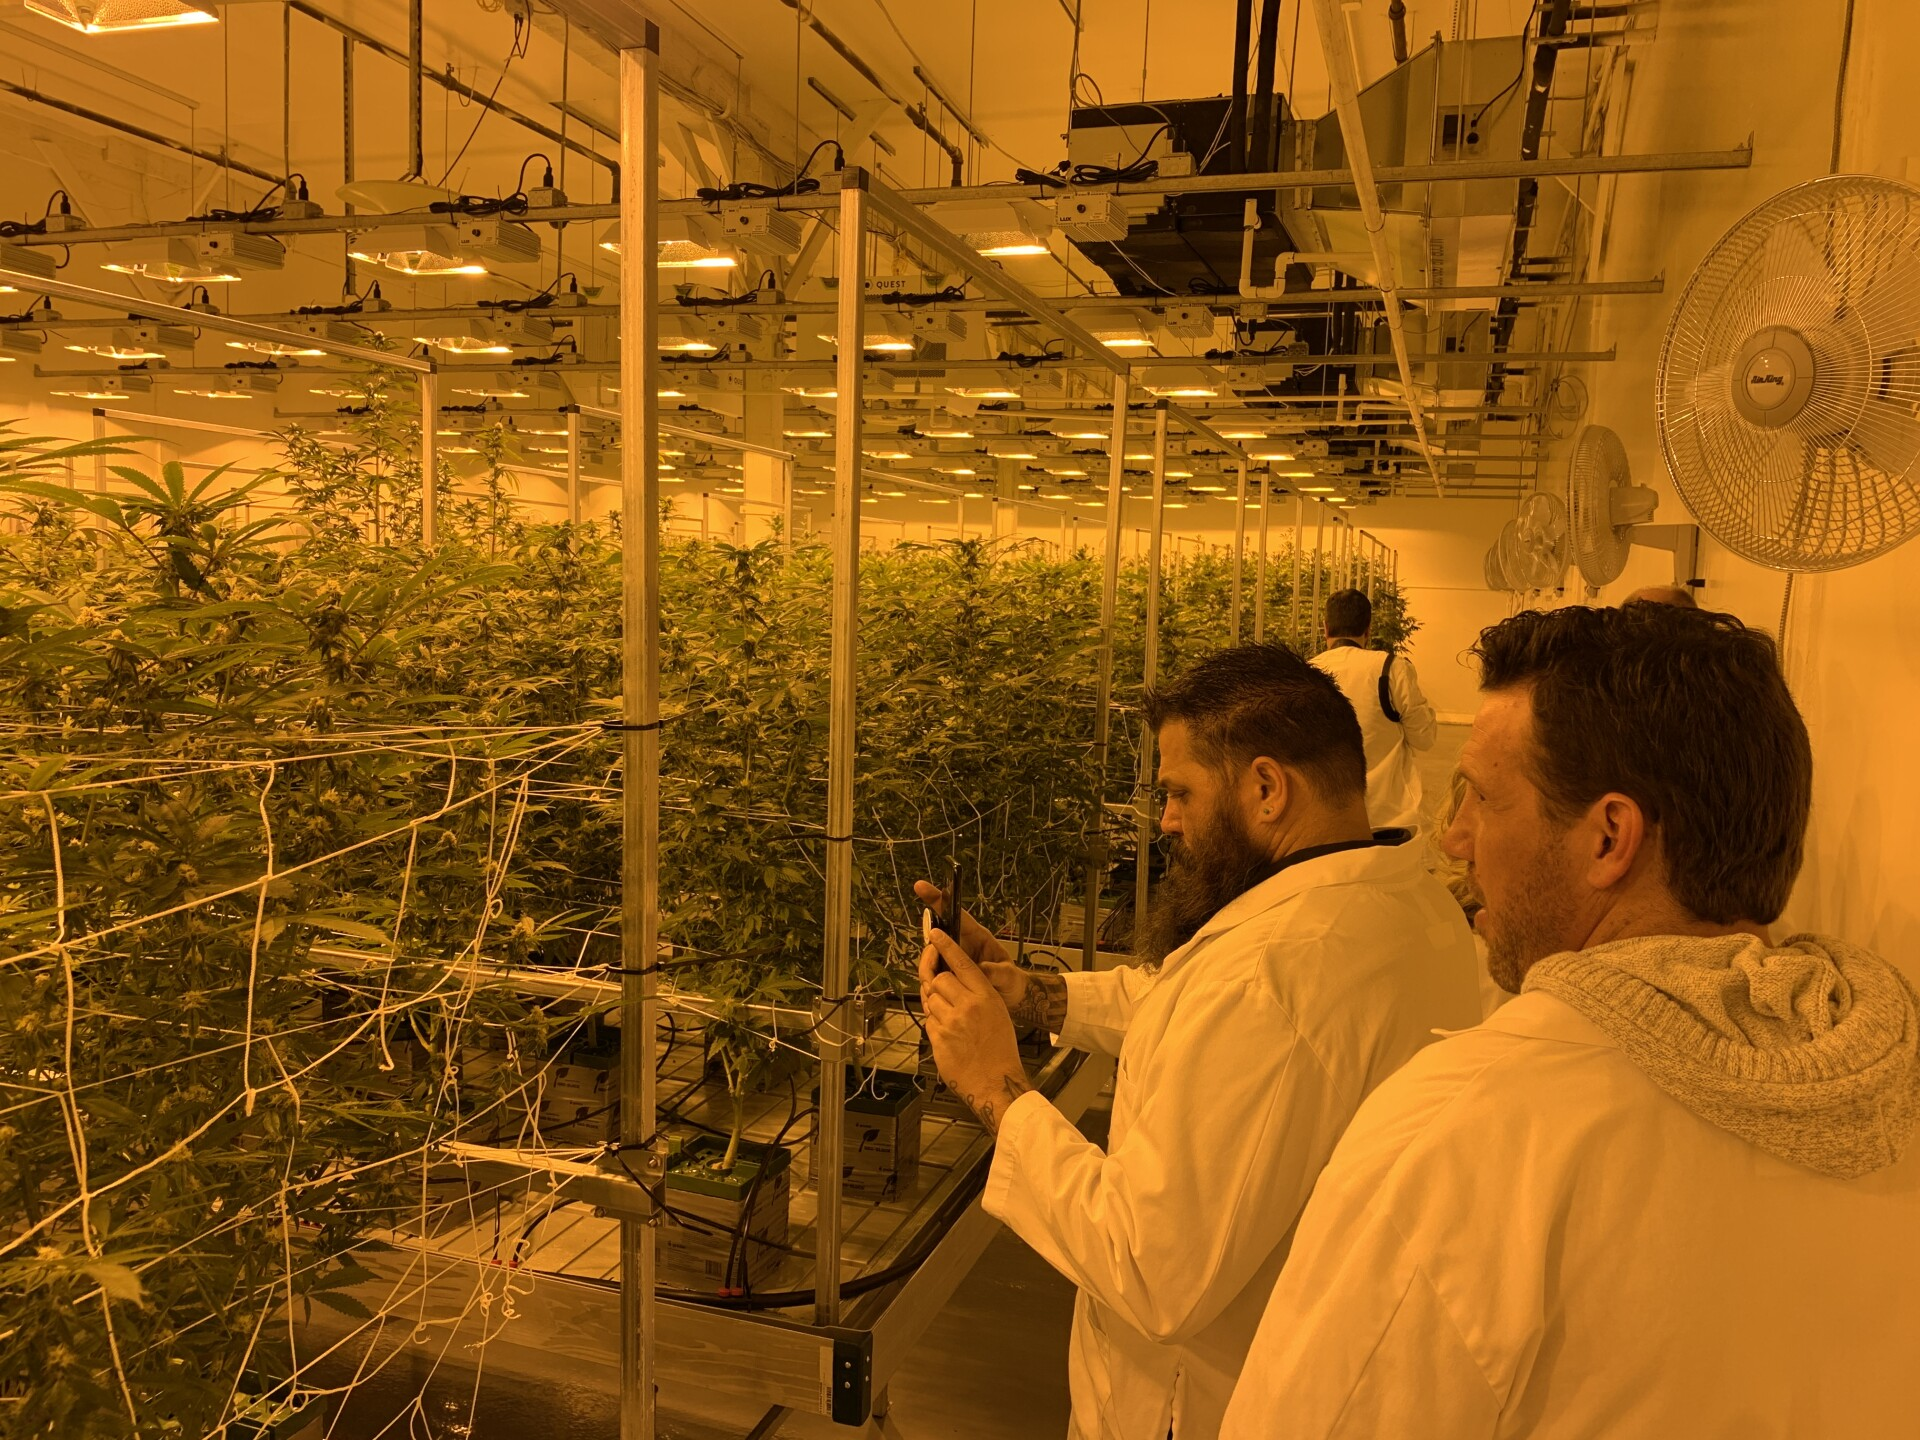 Photos: One of Utah's first medical cannabis grow facilities opens in Tooele